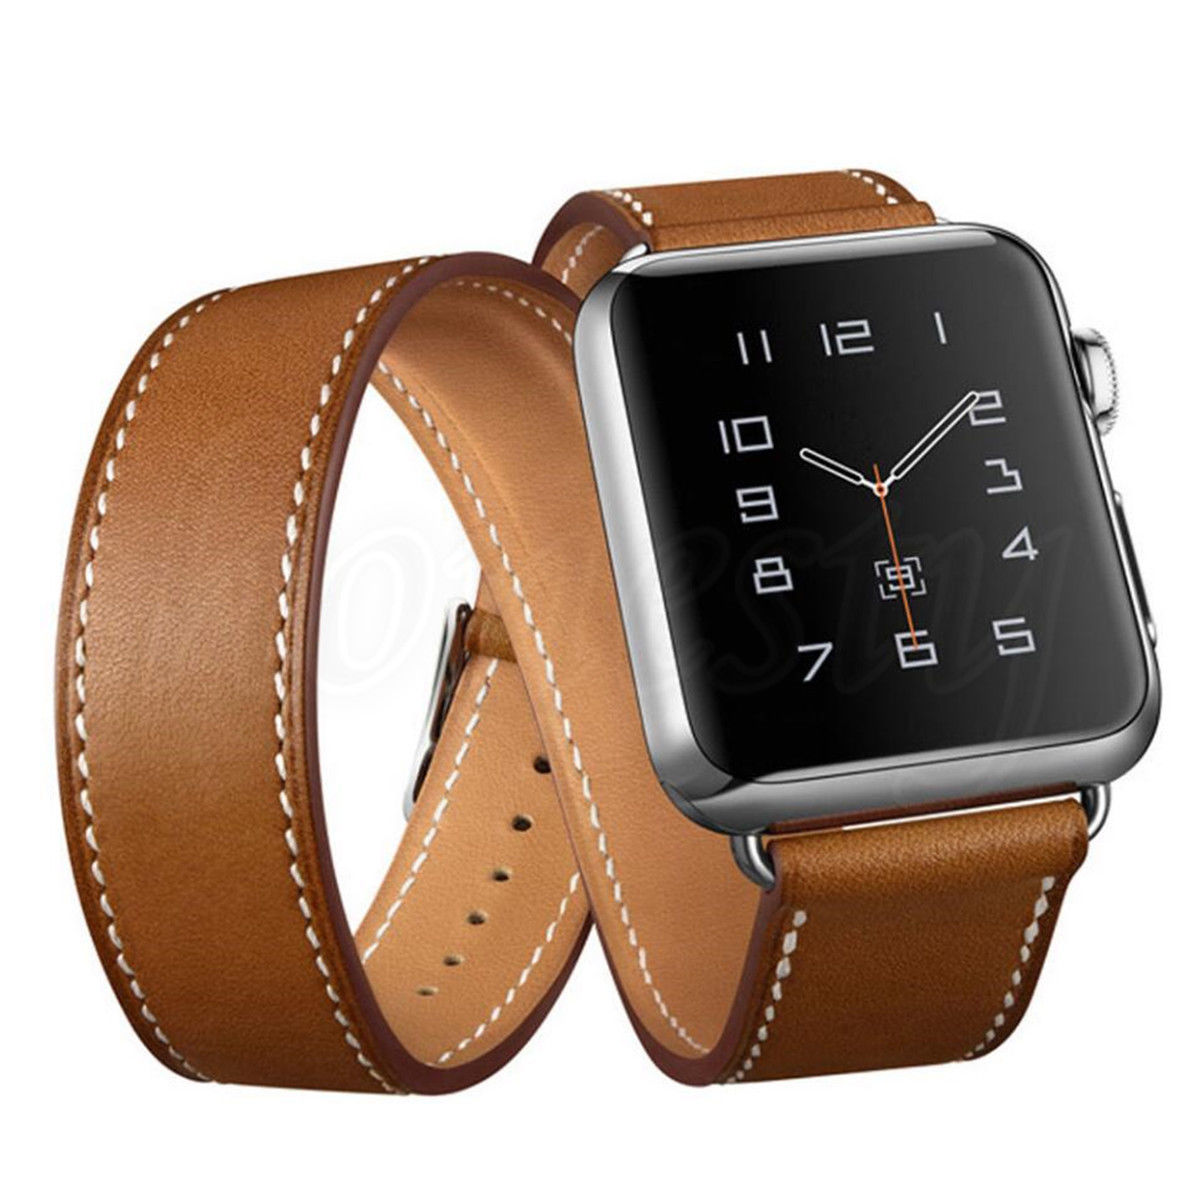 Genuine Leather Watch Band Strap Replacement For Apple